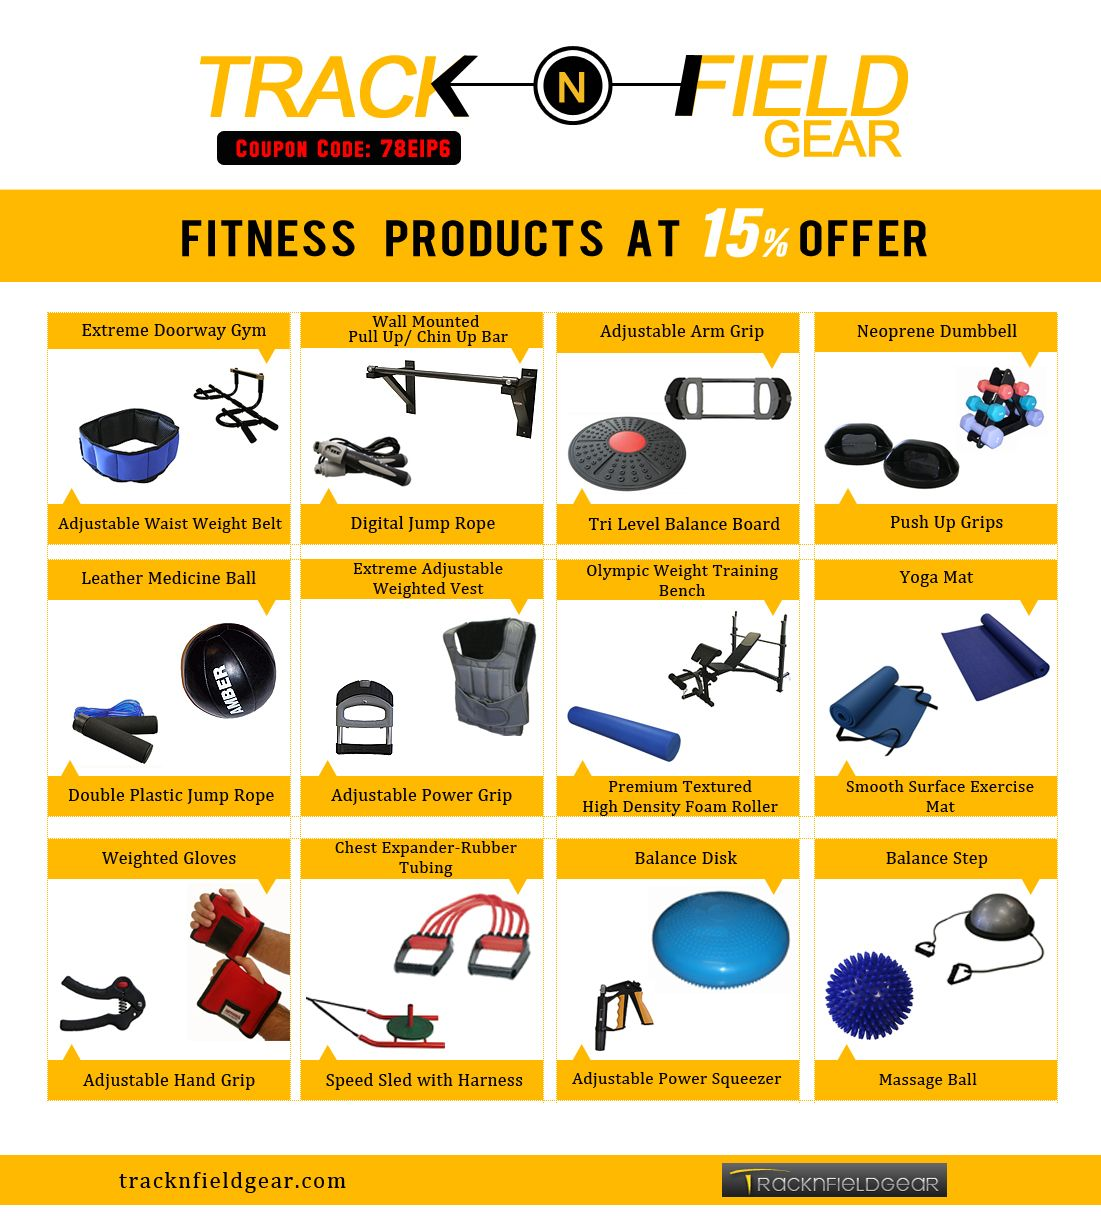 Fitness Products at 15 OFF Find